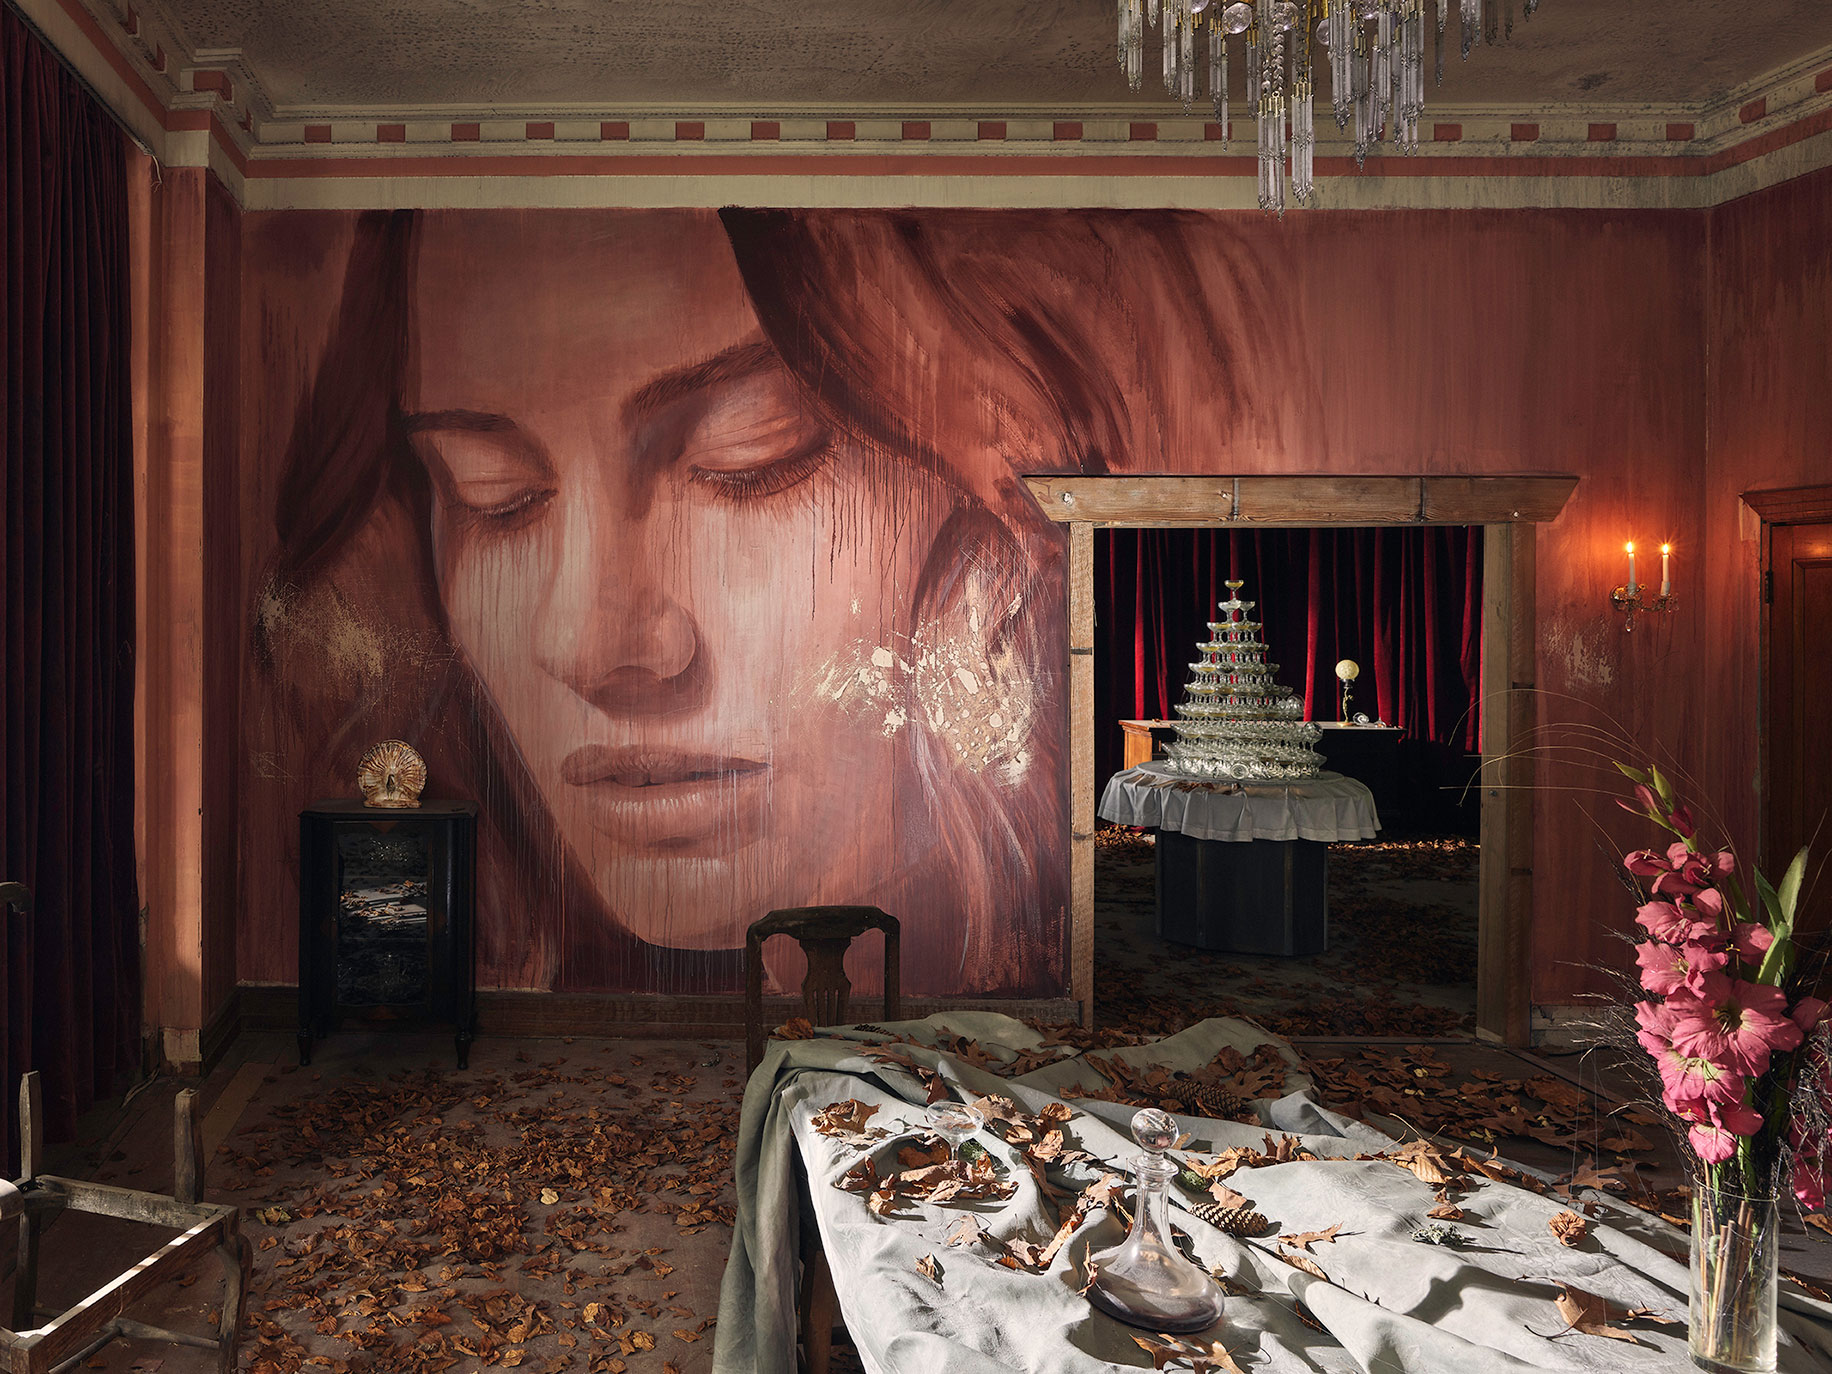 Rone's 'Empire' at Burnham Beeches – Art that Celebrates the Decline into Ruin